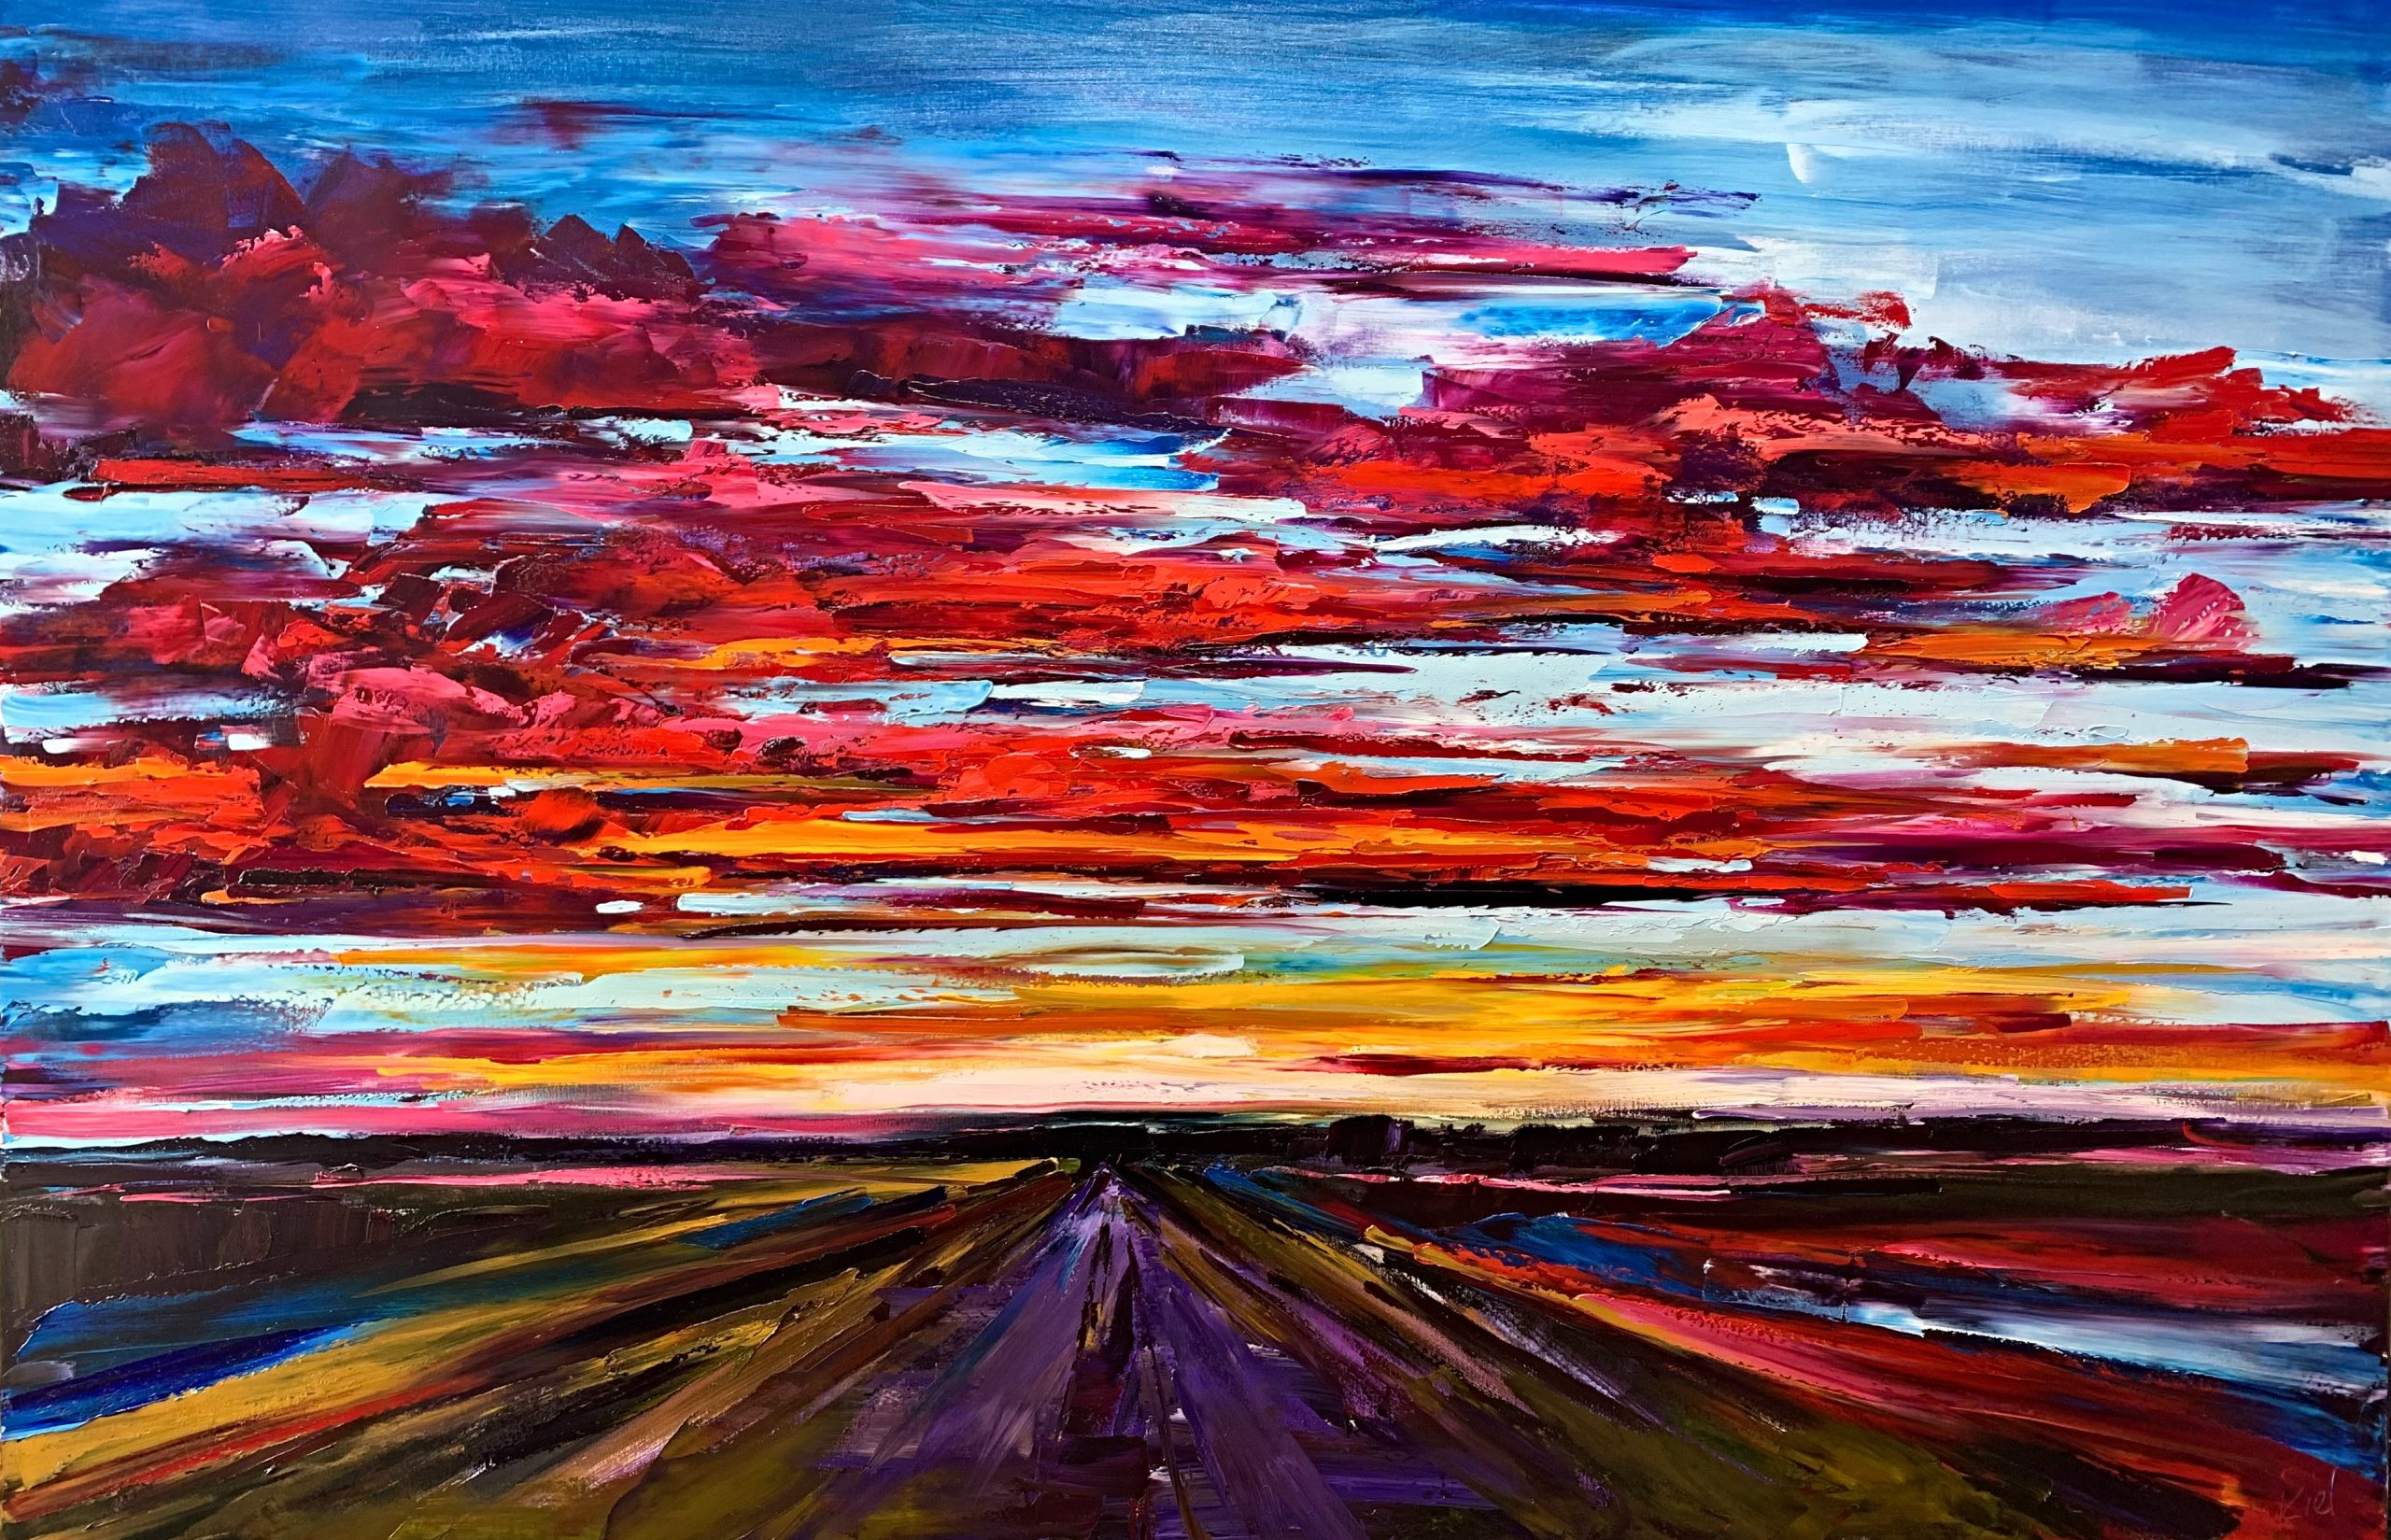 Wonders Never Cease, oil landscape painting by Kimberly Kiel | Effusion Art Gallery + Cast Glass Studio, Invermere BC